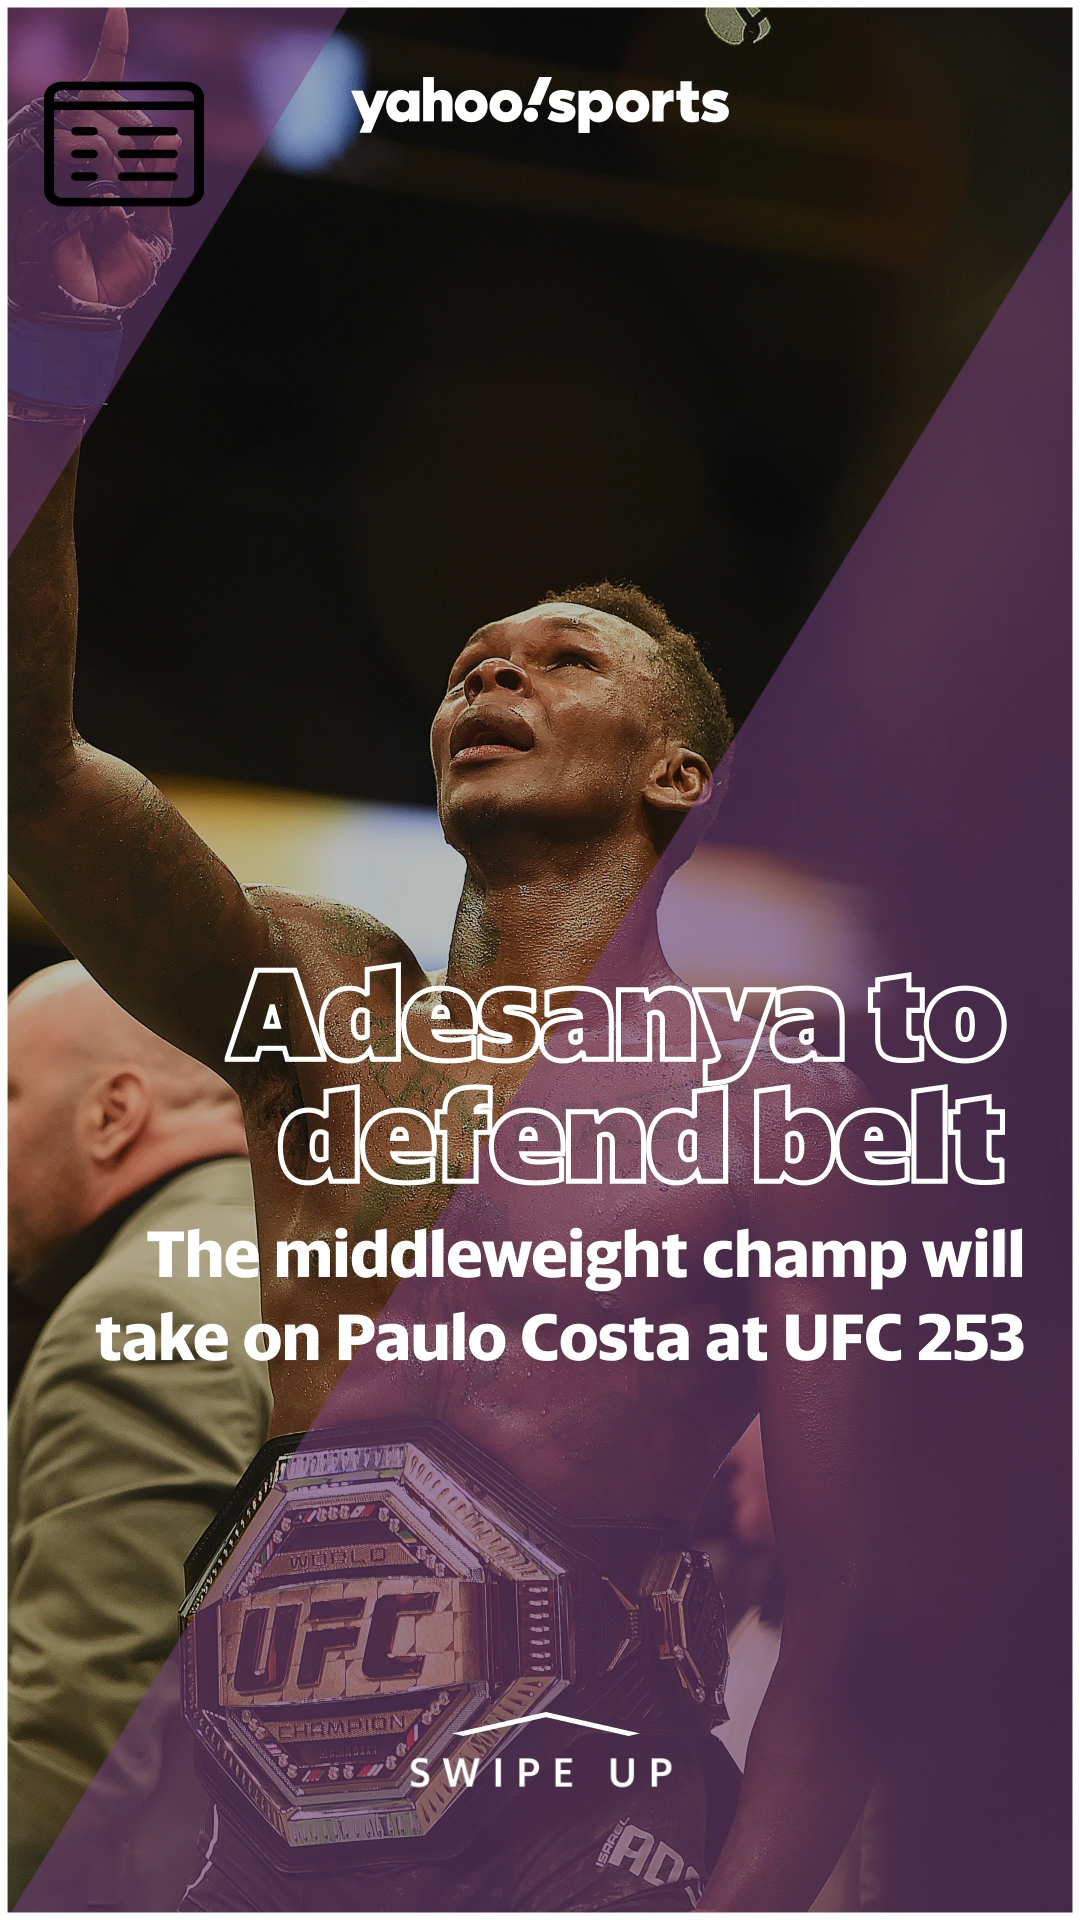 Israel Adesanya To Defend Middleweight Belt Against Paulo Costa At Ufc 253 Video